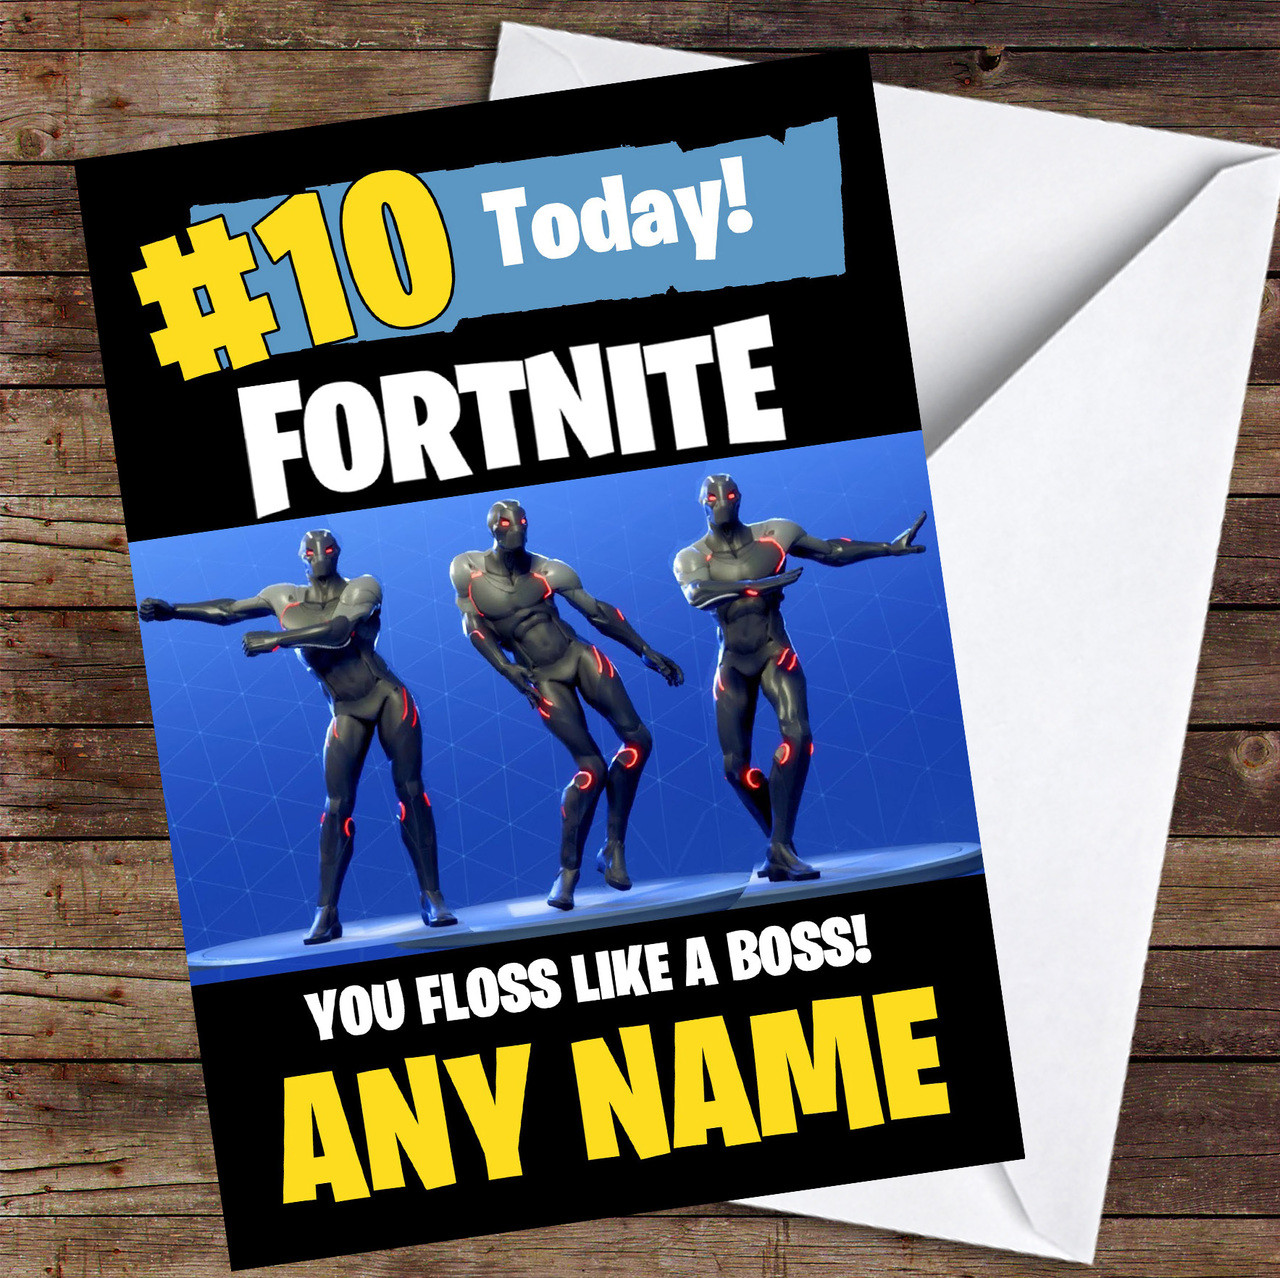 photo about Fortnite Birthday Card Printable identify Fortnite Dances Floss Such as A Manager Customized Childrens Birthday Card